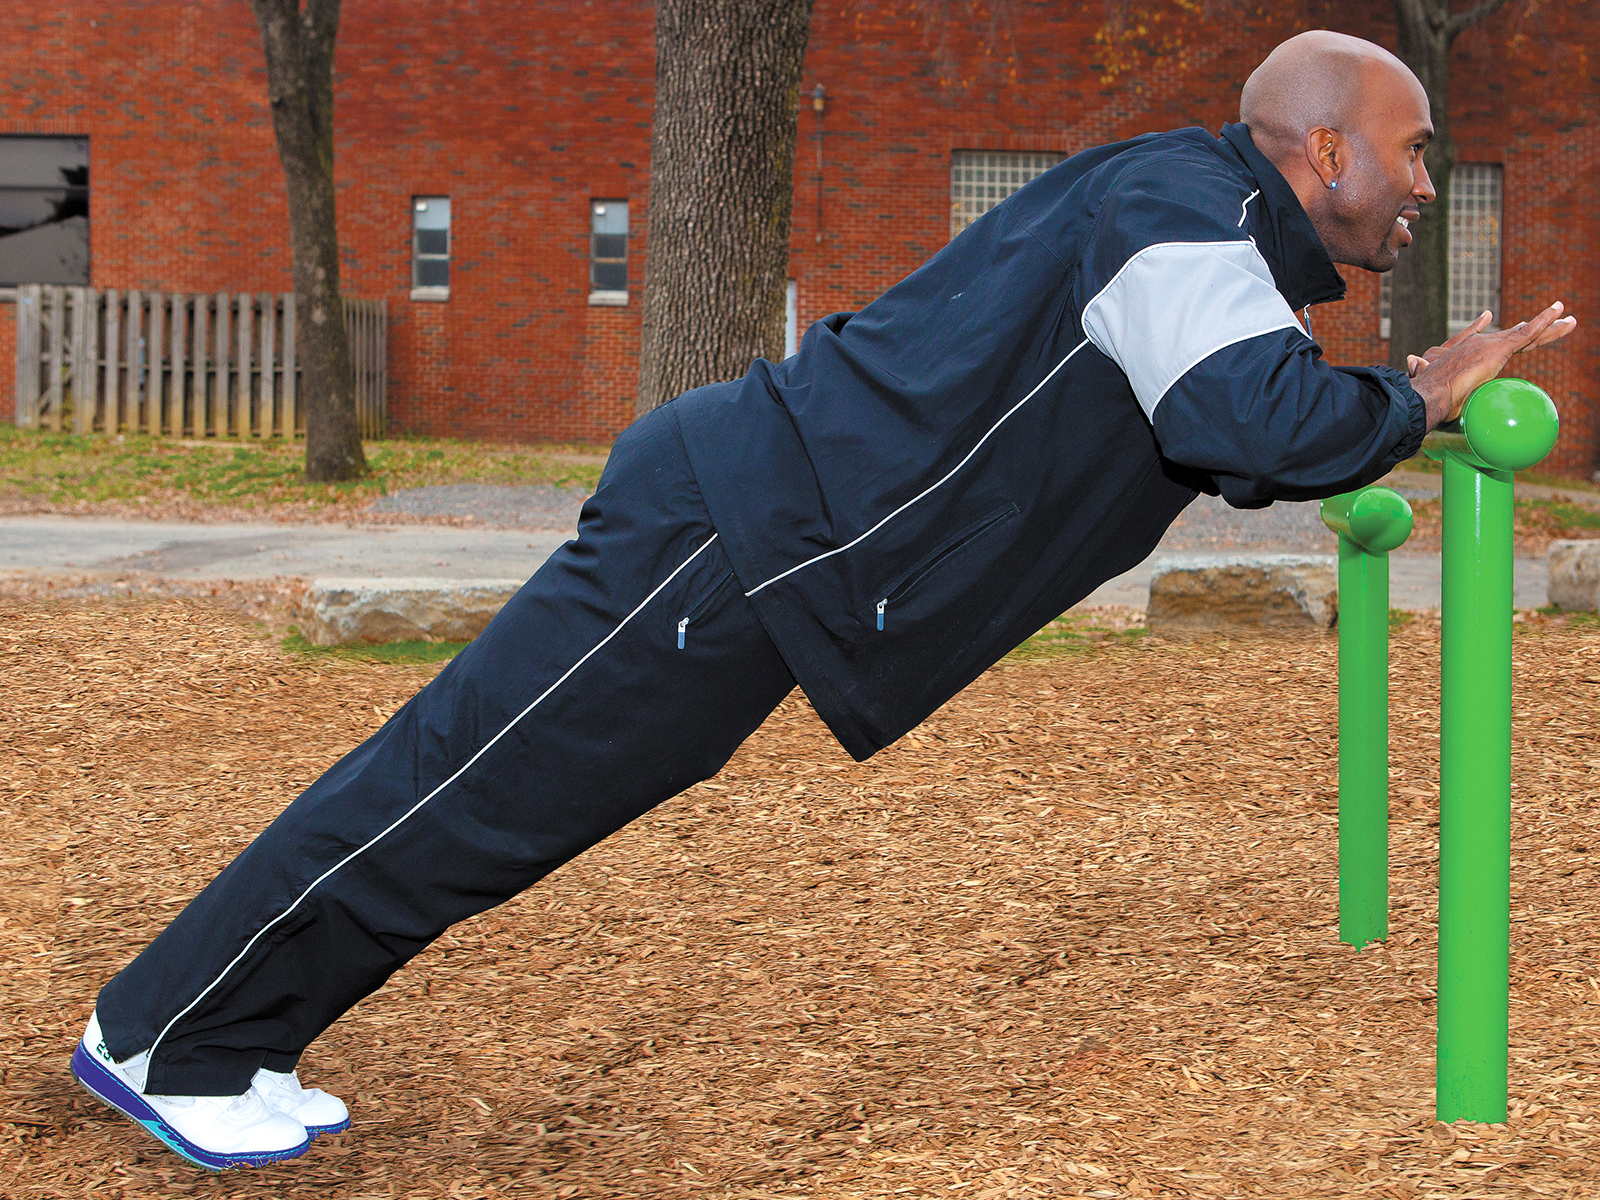 People doing push-ups on outdoor fitness equipment